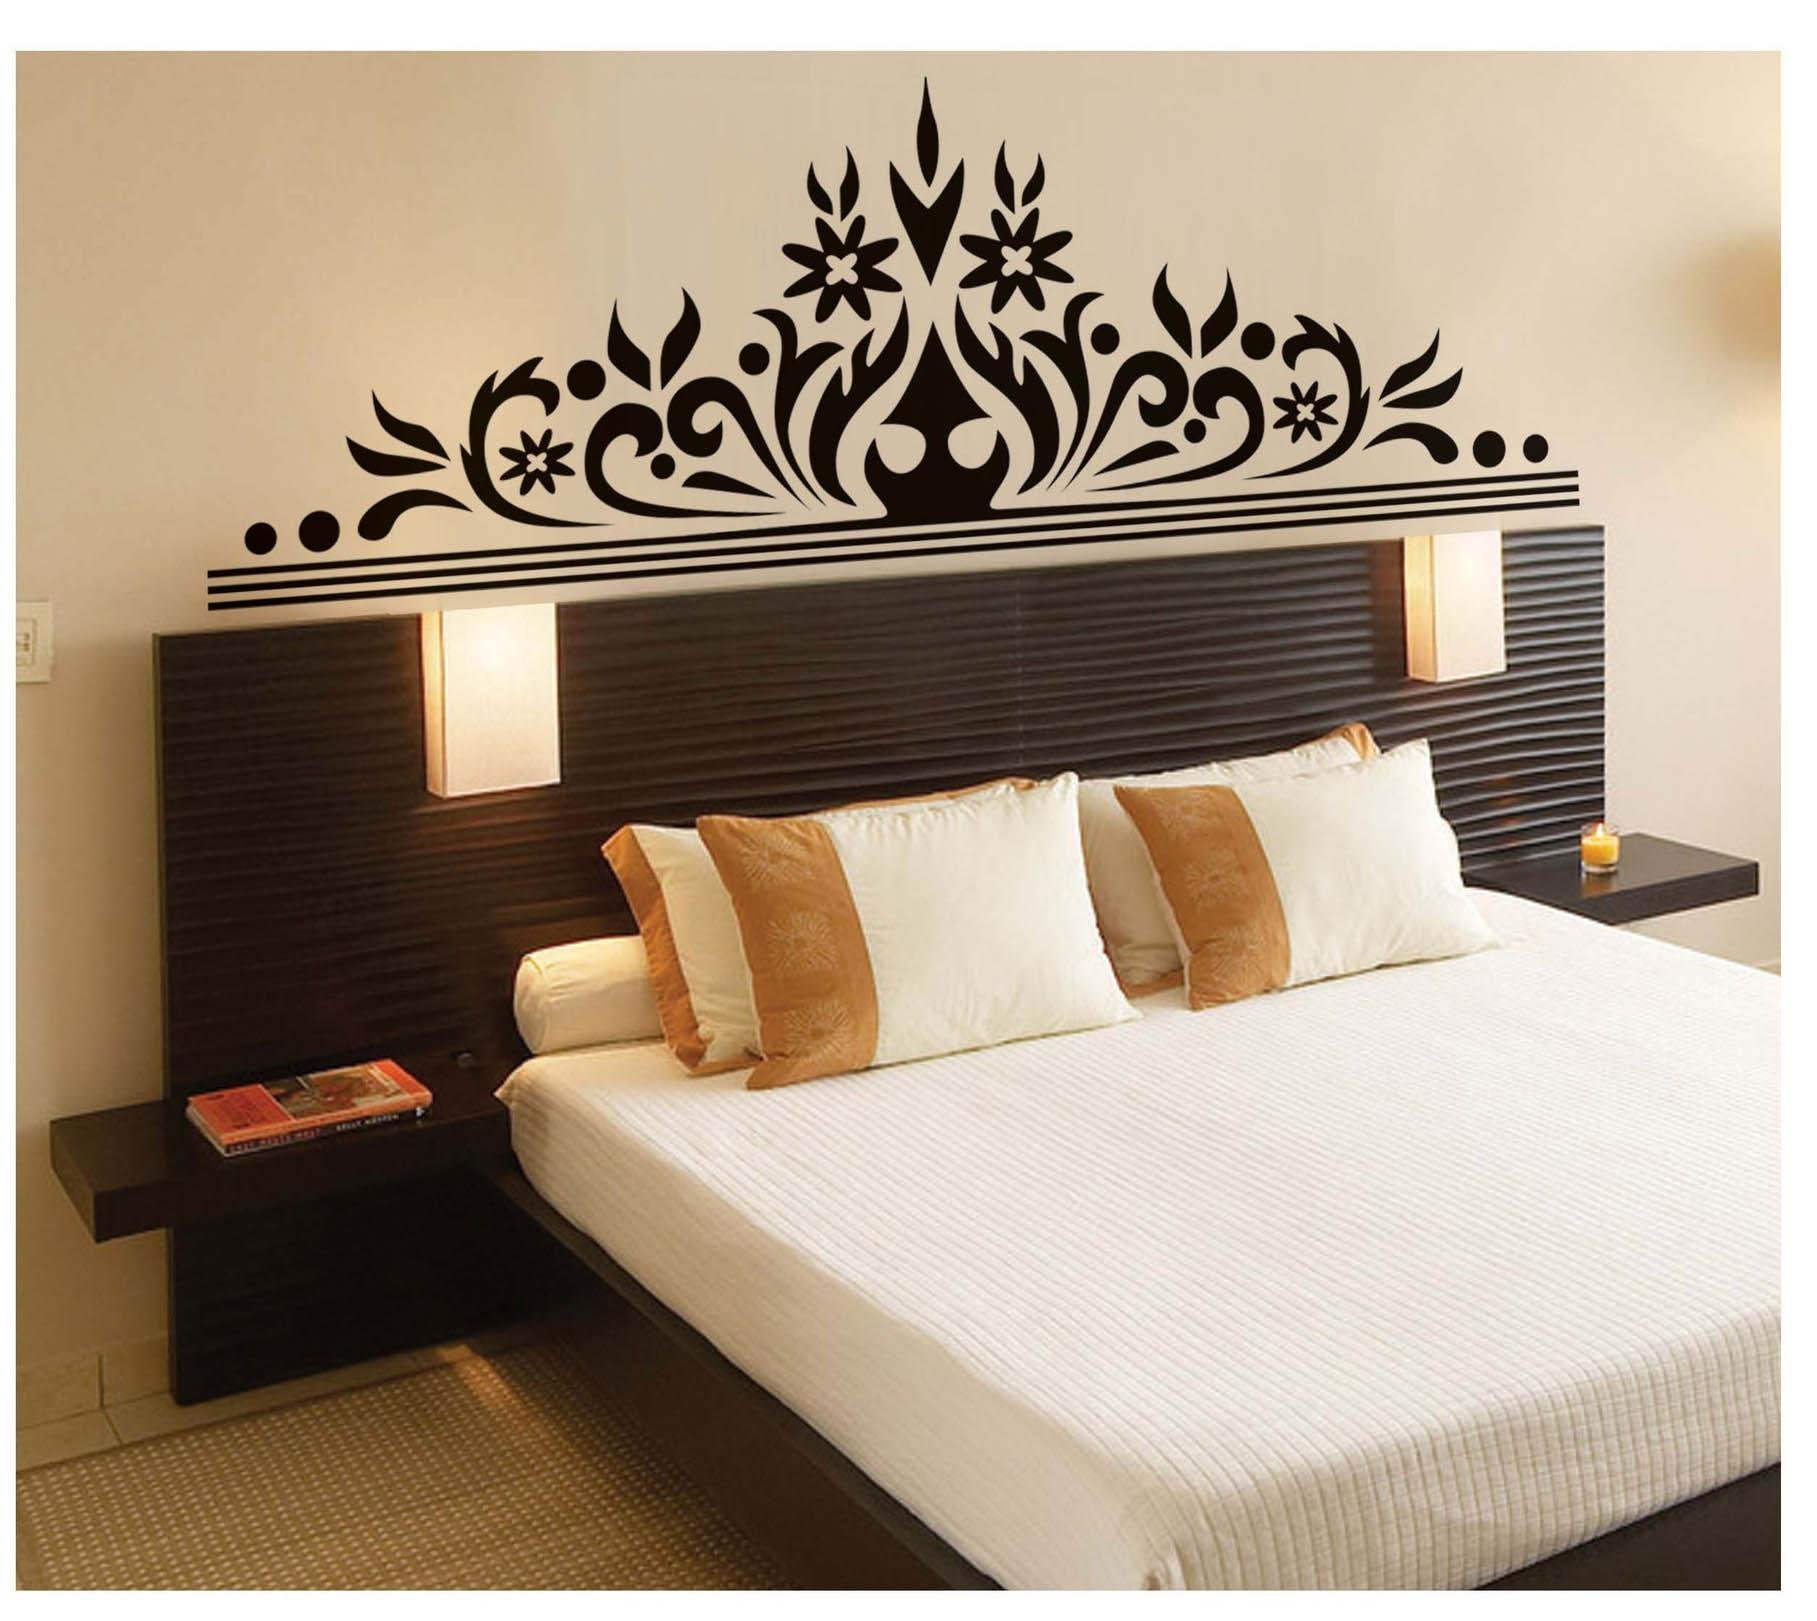 Best Bedroom Awesome Azure Wall Stickers For Bedrooms With Variation Combo Style Trends With Pictures